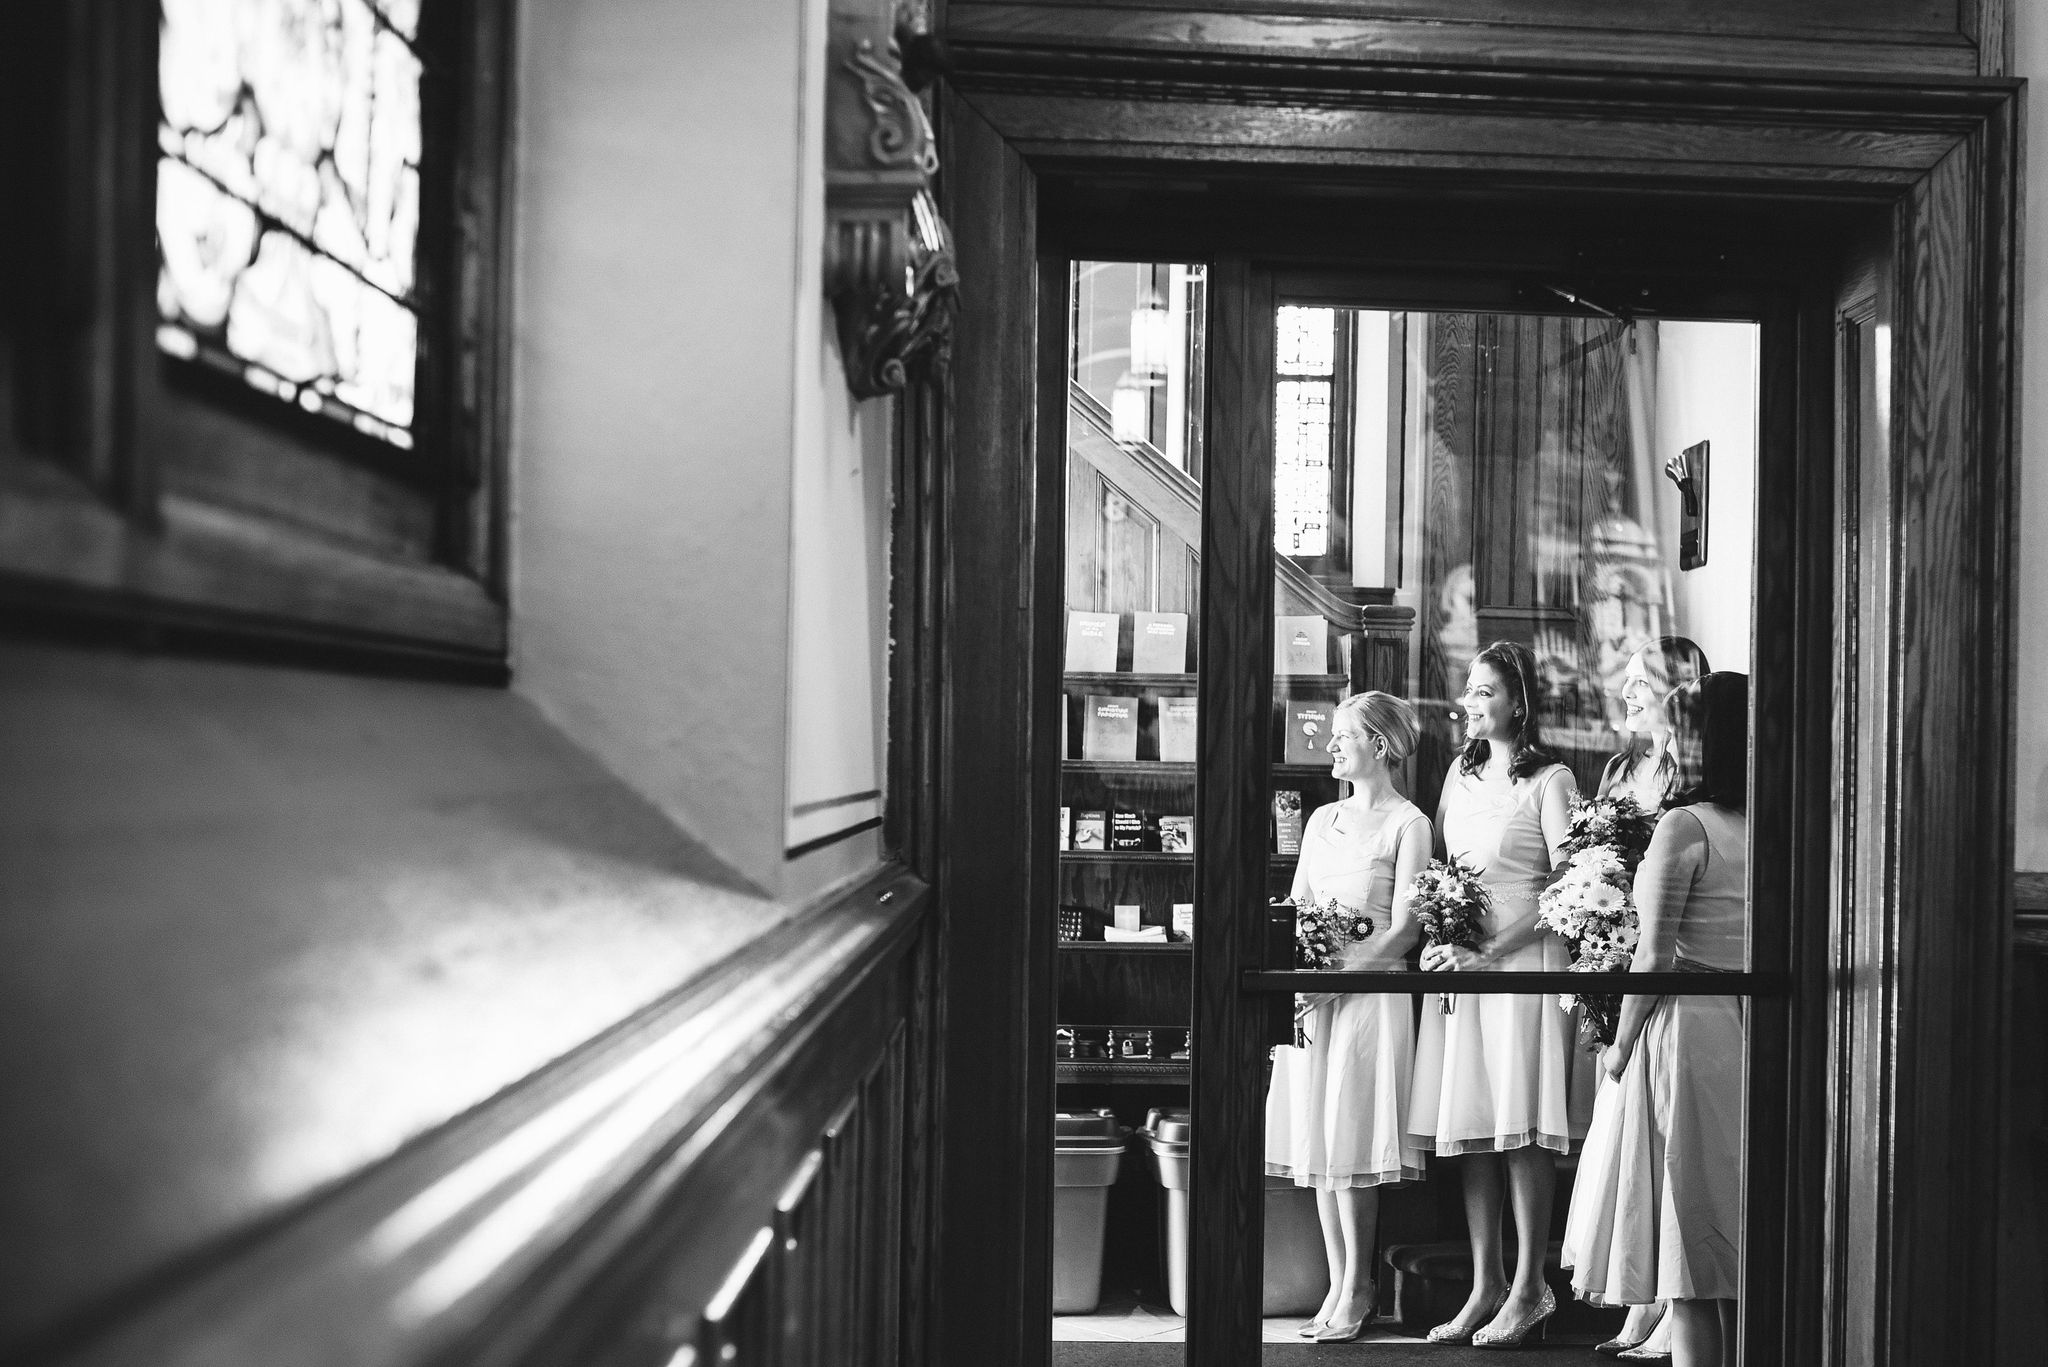 Baltimore, Church Wedding, Maryland Wedding Photographer, Vintage, Classic, Bridesmaids Waiting to Walk Down Aisle, Black and White Photo, Candid Photo